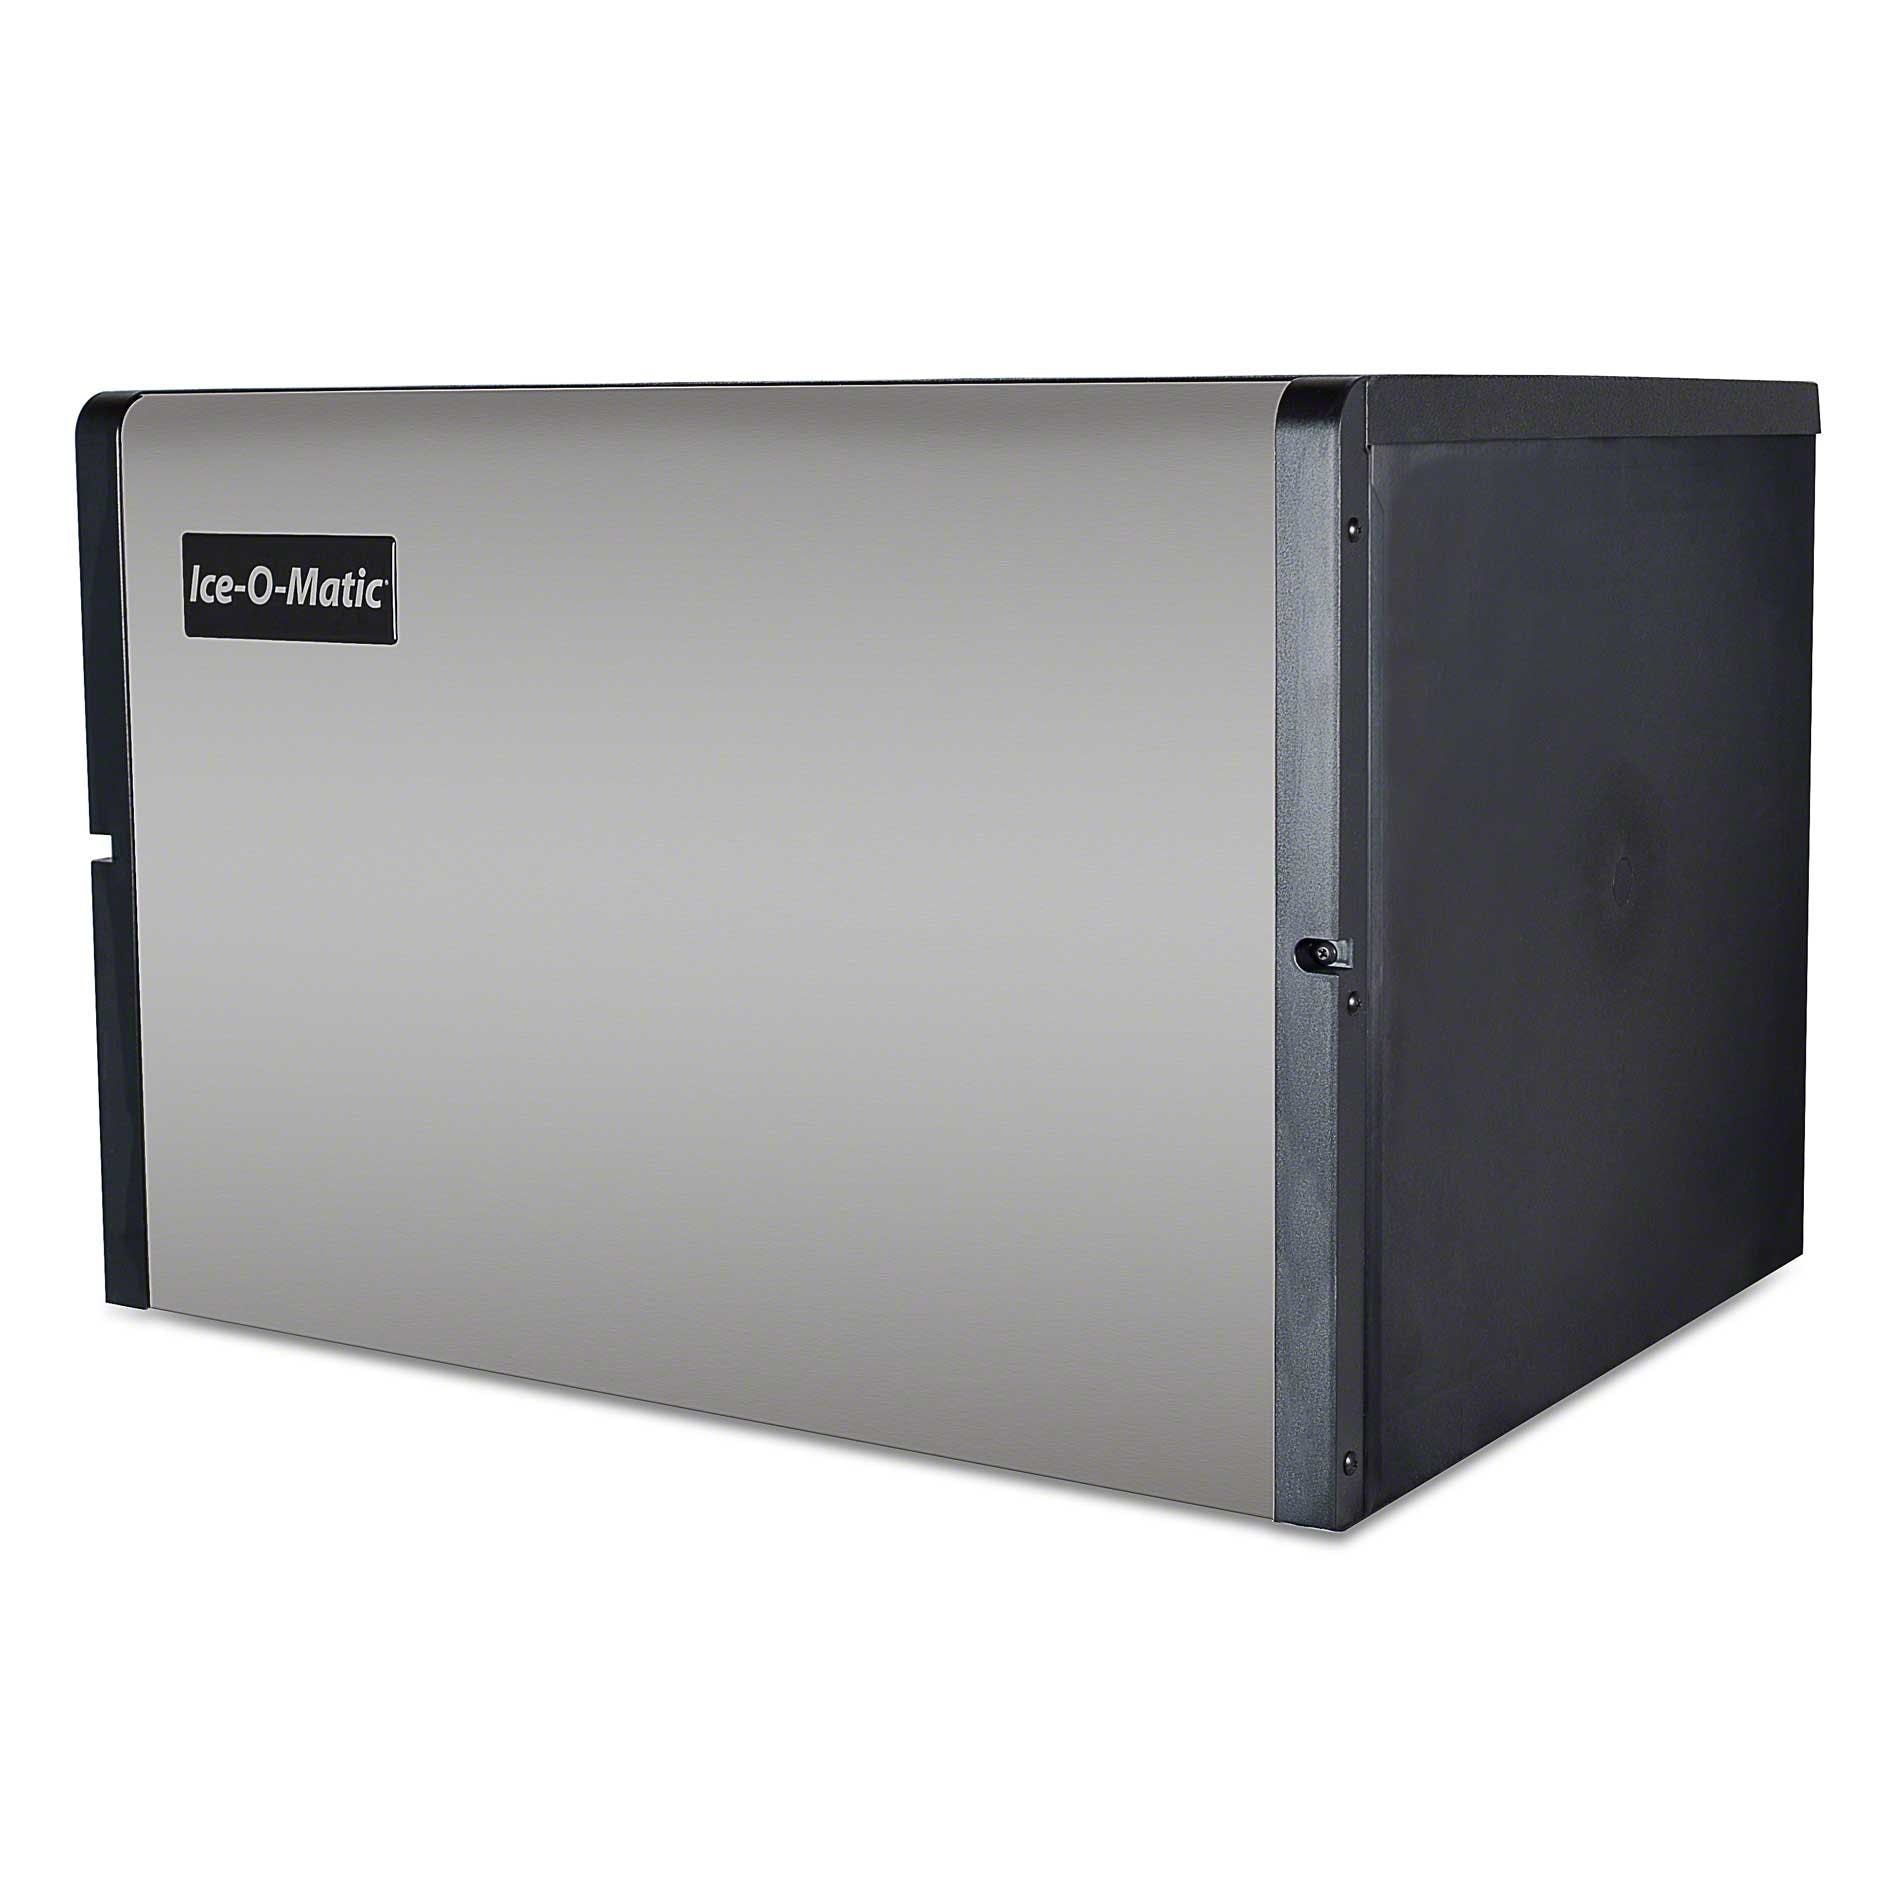 Ice-O-Matic - ICE0500HR 567 lb Half Cube Ice Machine - sold by Food Service Warehouse